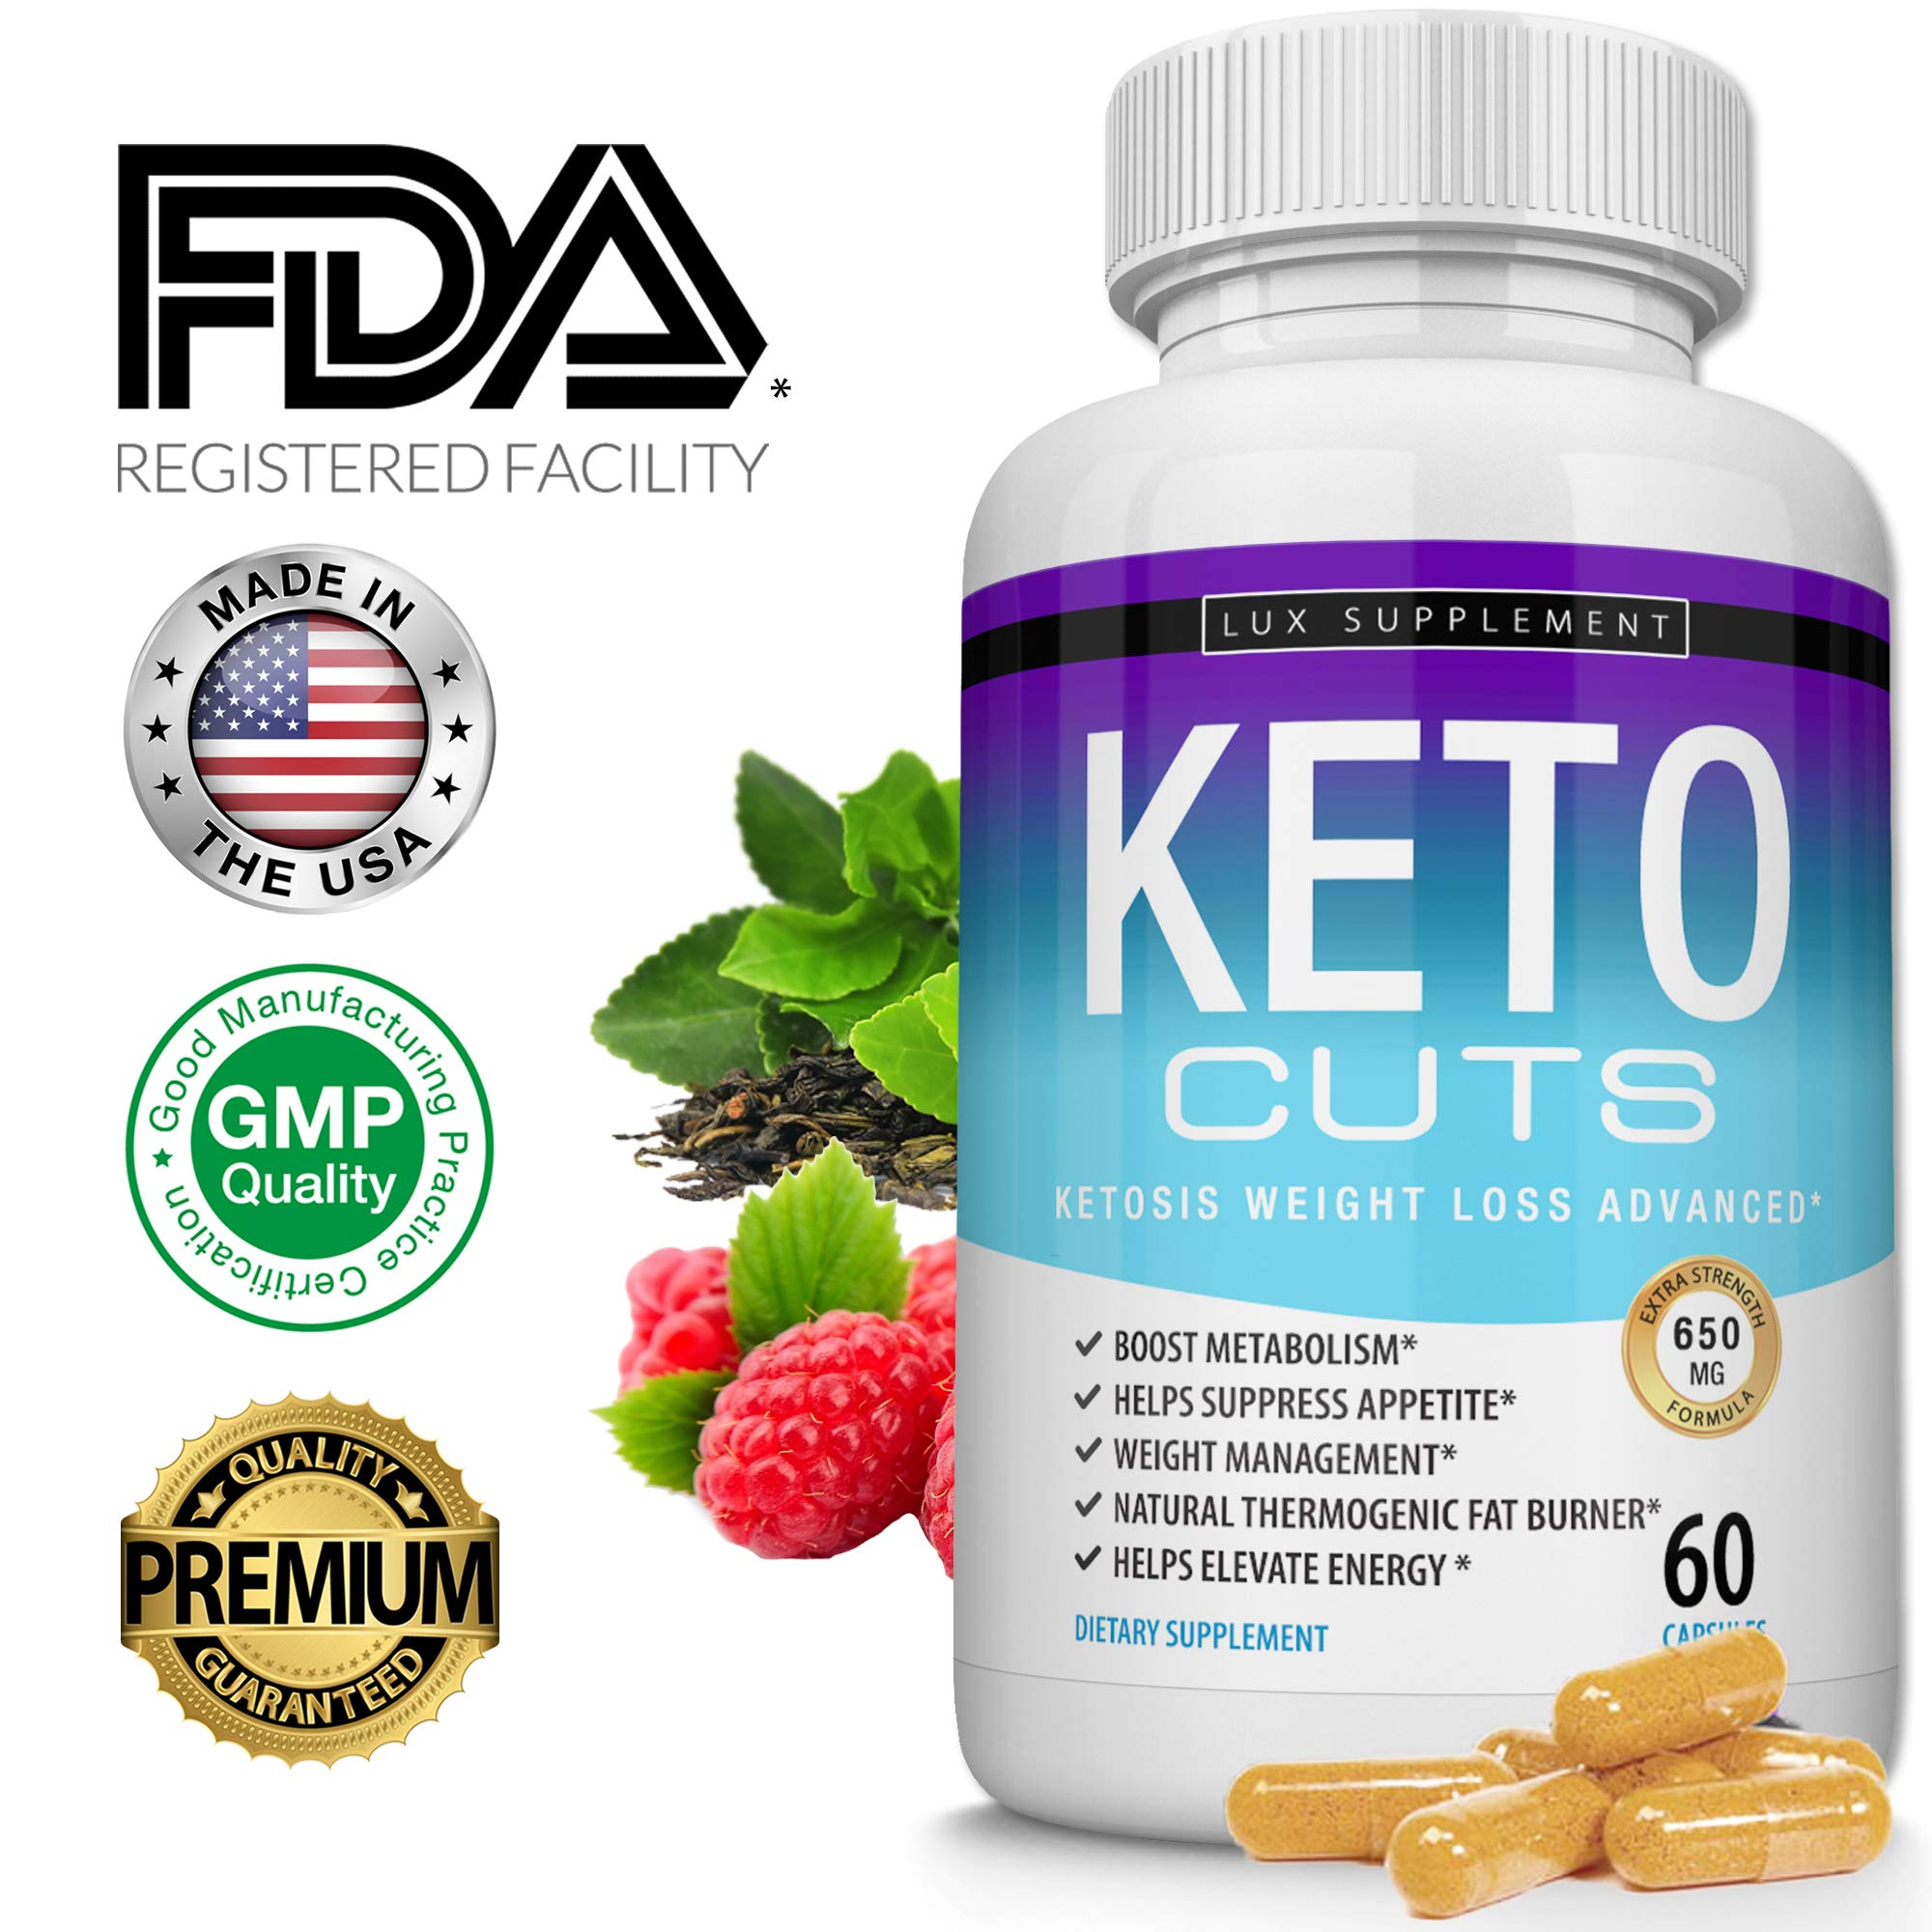 Shark Tank Keto Cuts Pills Ketosis Weight Loss Advanced - Best Ultra Fat Burner Using Ketone and ketogenic Diet, Boost Metabolism and Energy While Burning Fat, Men Women, 60 Capsules Lux Supplement